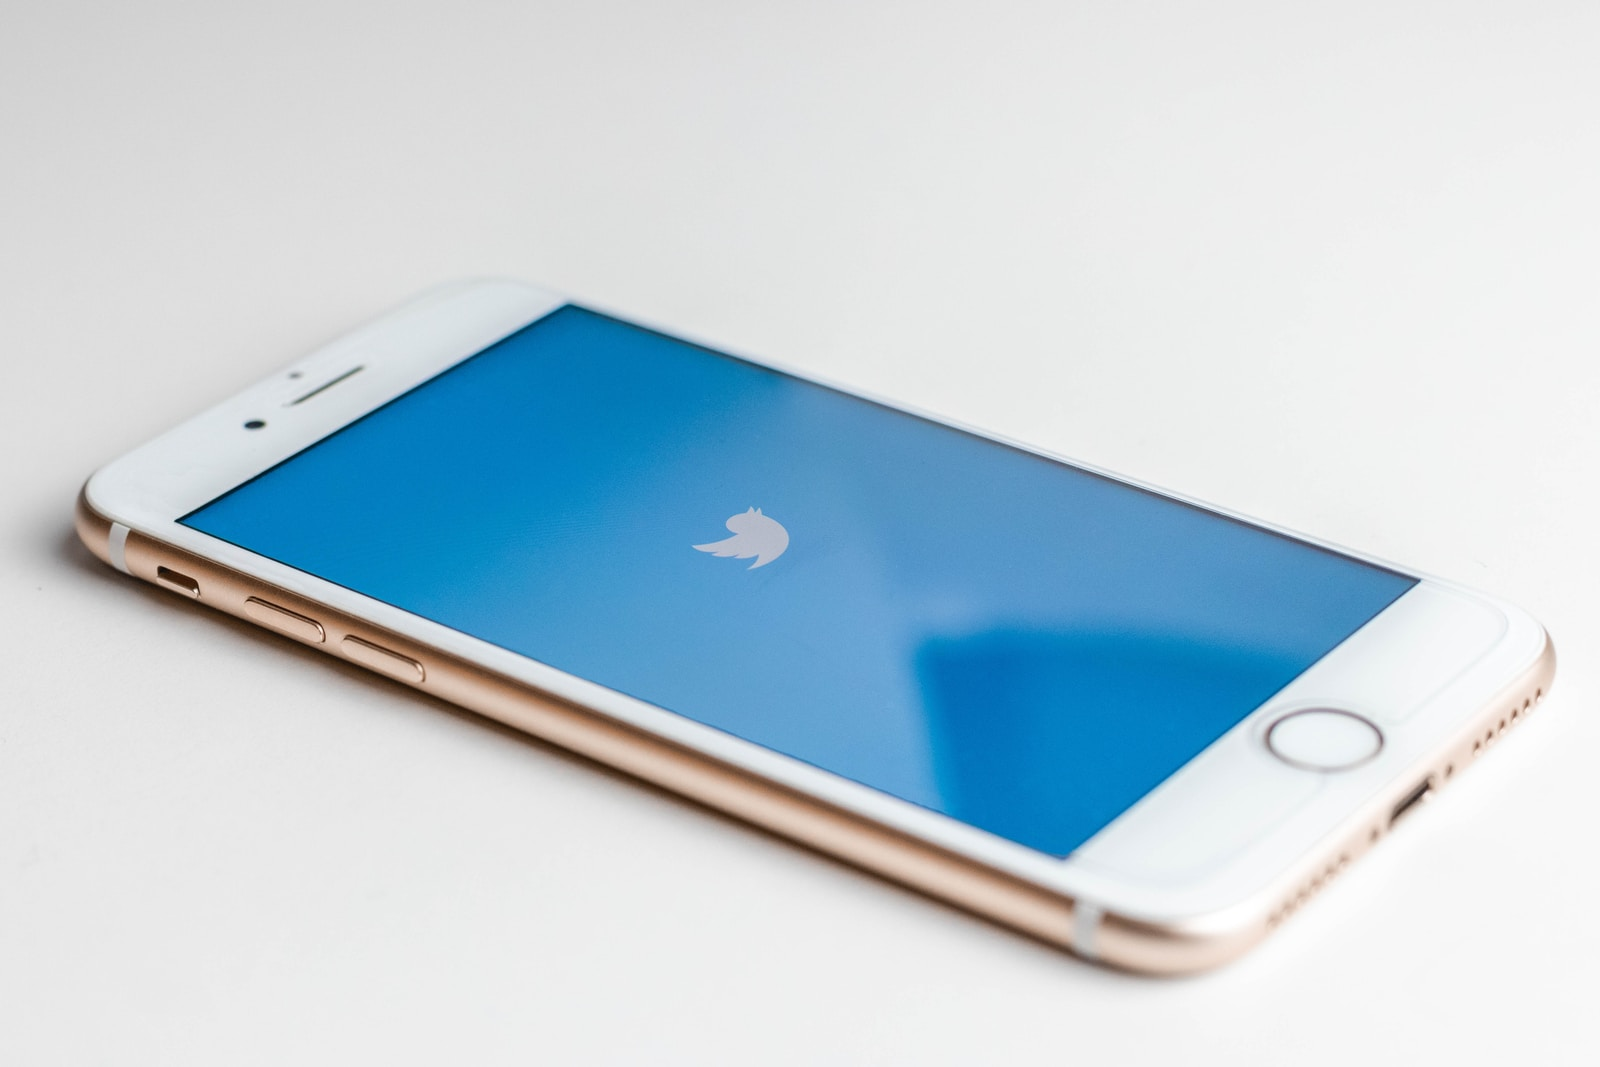 Gold iphone 6s with twitter logo on screen